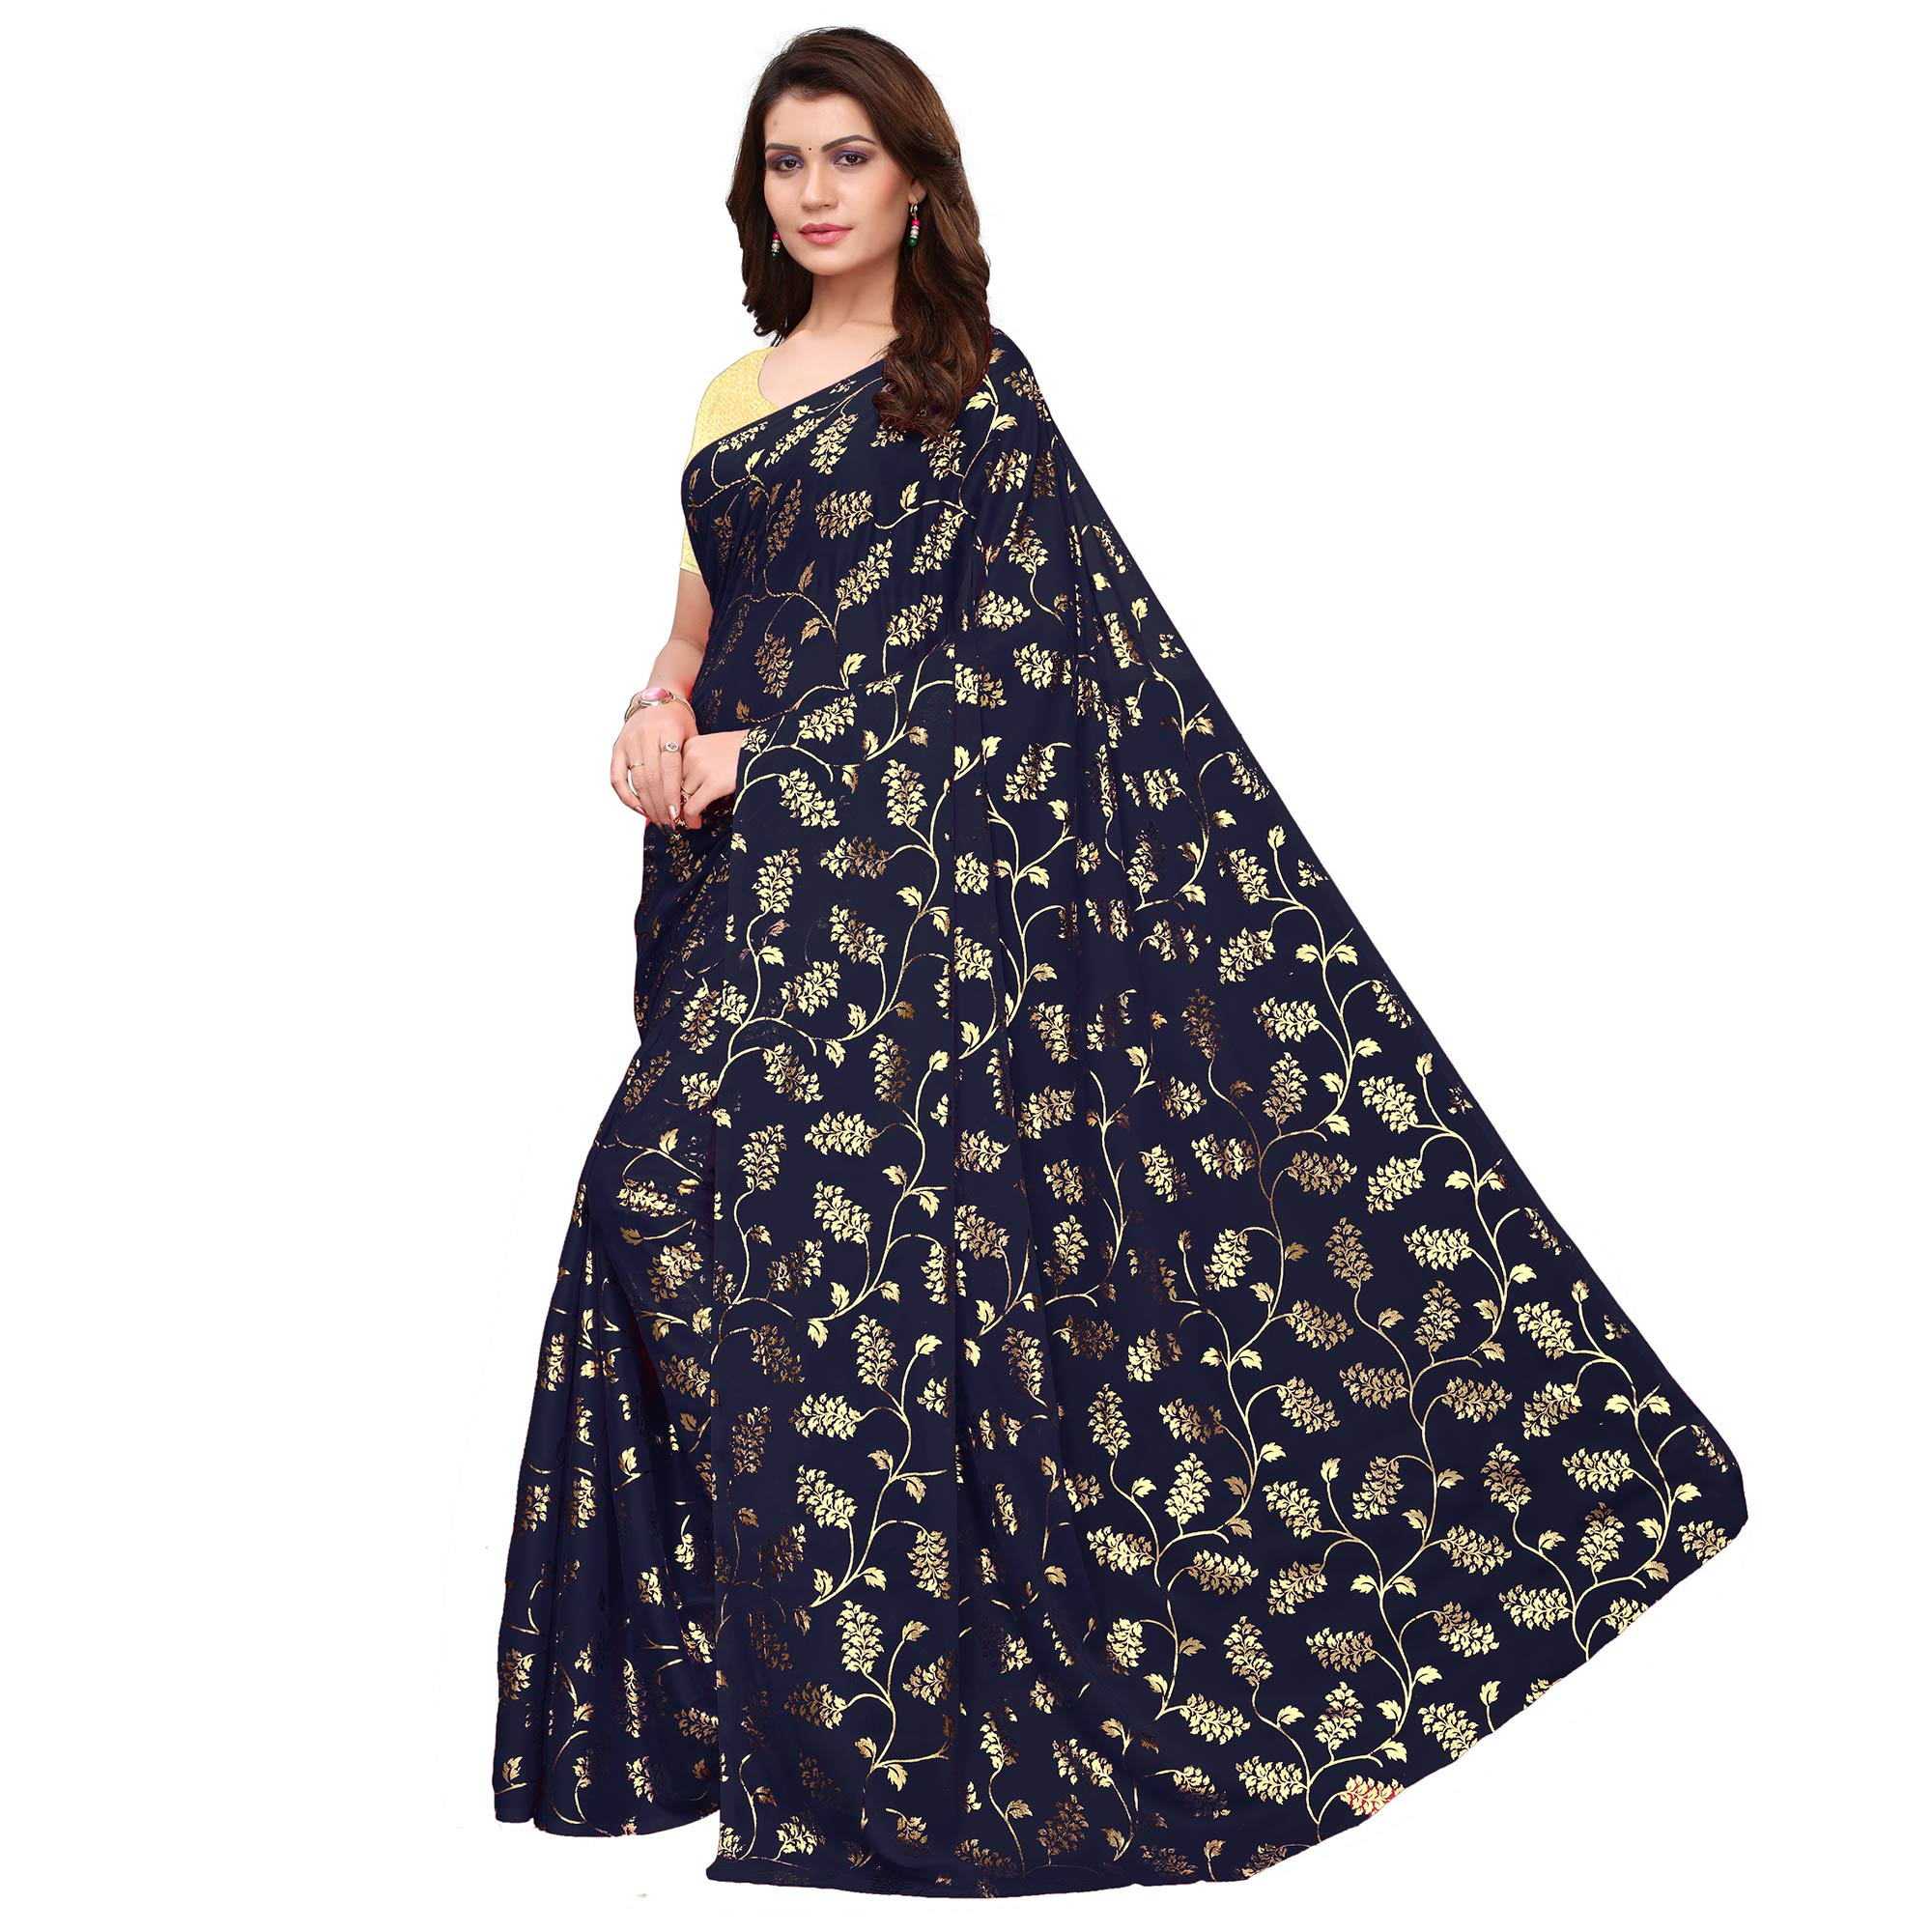 Charming Navy Blue Colored Party Wear Foil Printed Georgette Saree